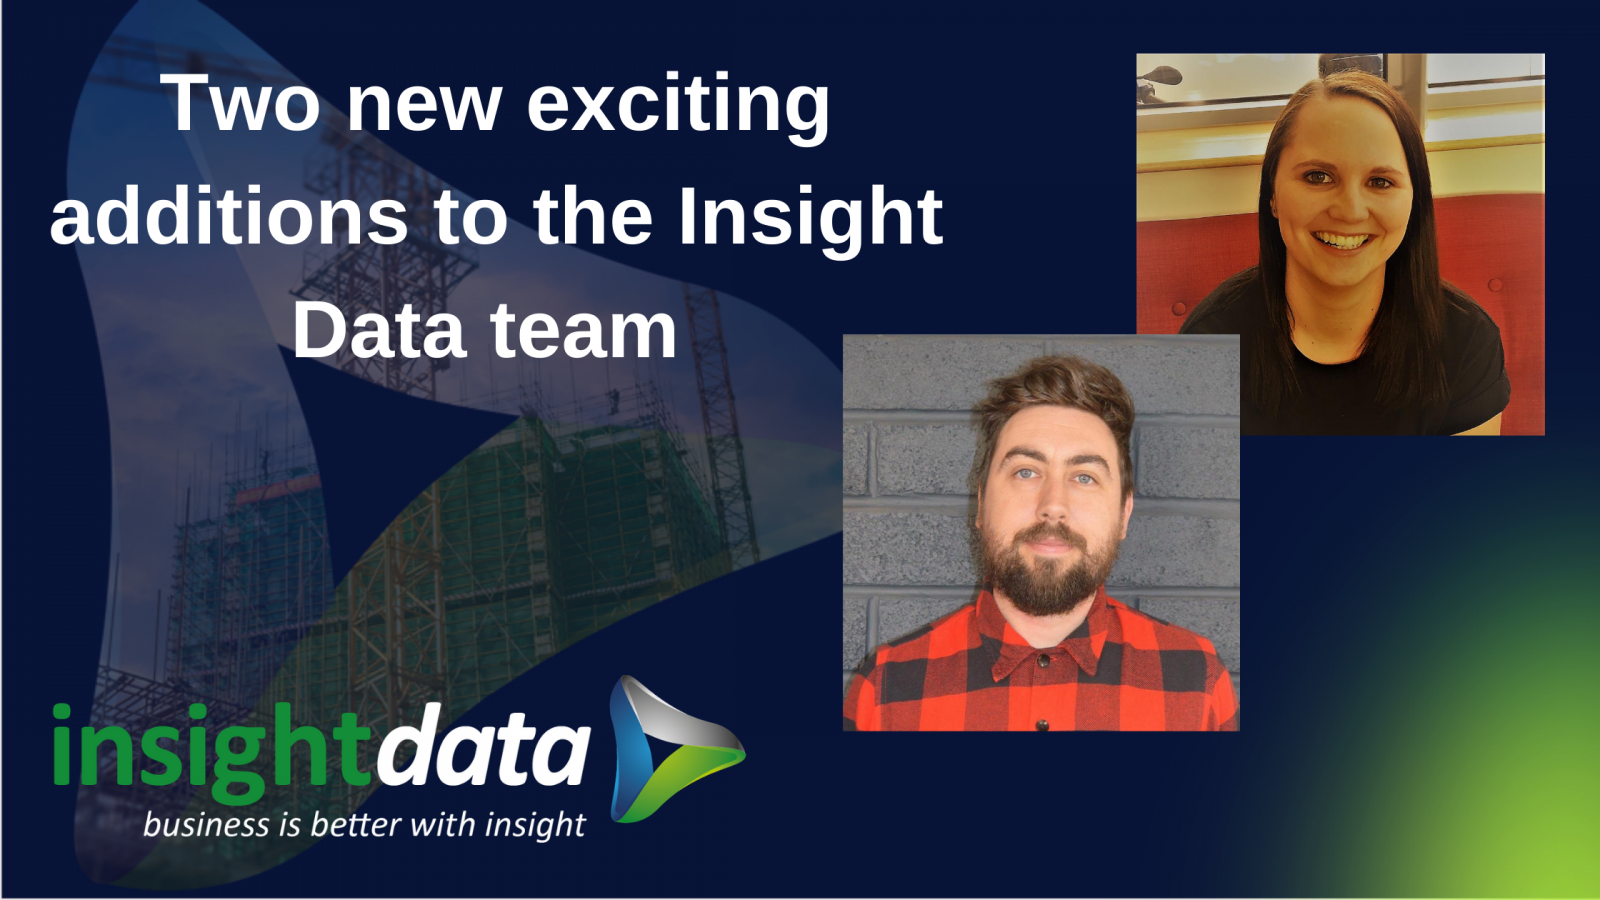 Two new exciting additions to the Insight Data team image